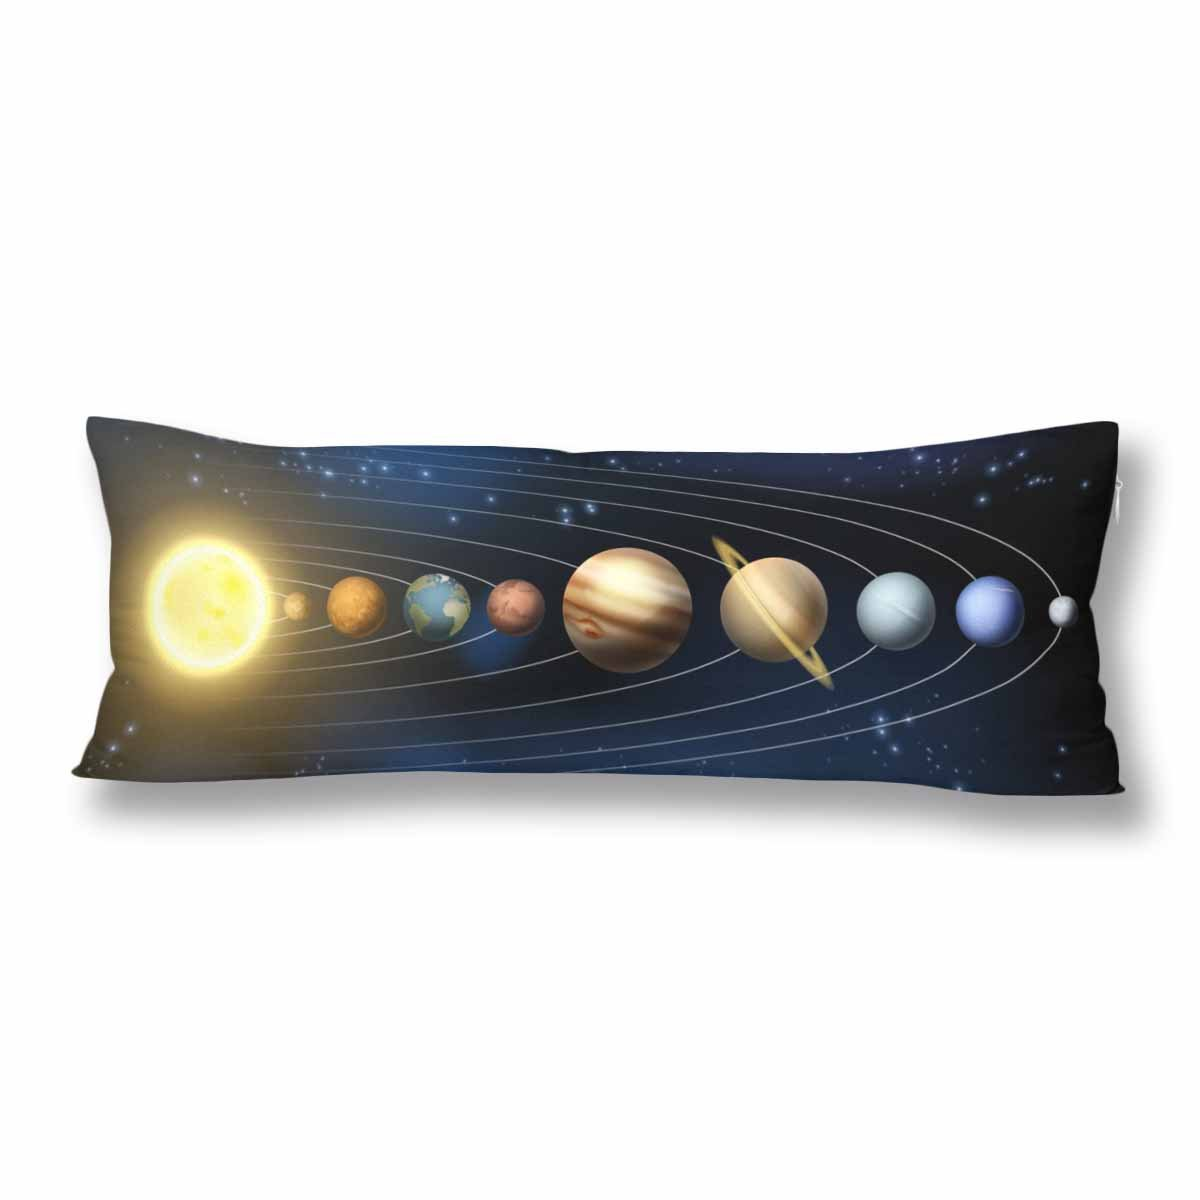 InterestPrint Solar System Planets Body Pillow Covers Pillowcase with Zipper 21x60 Twin Sides, Orbit Sun With Labels Rectangle Body Pillow Case Protector for Home Couch Sofa Bedding Decorative